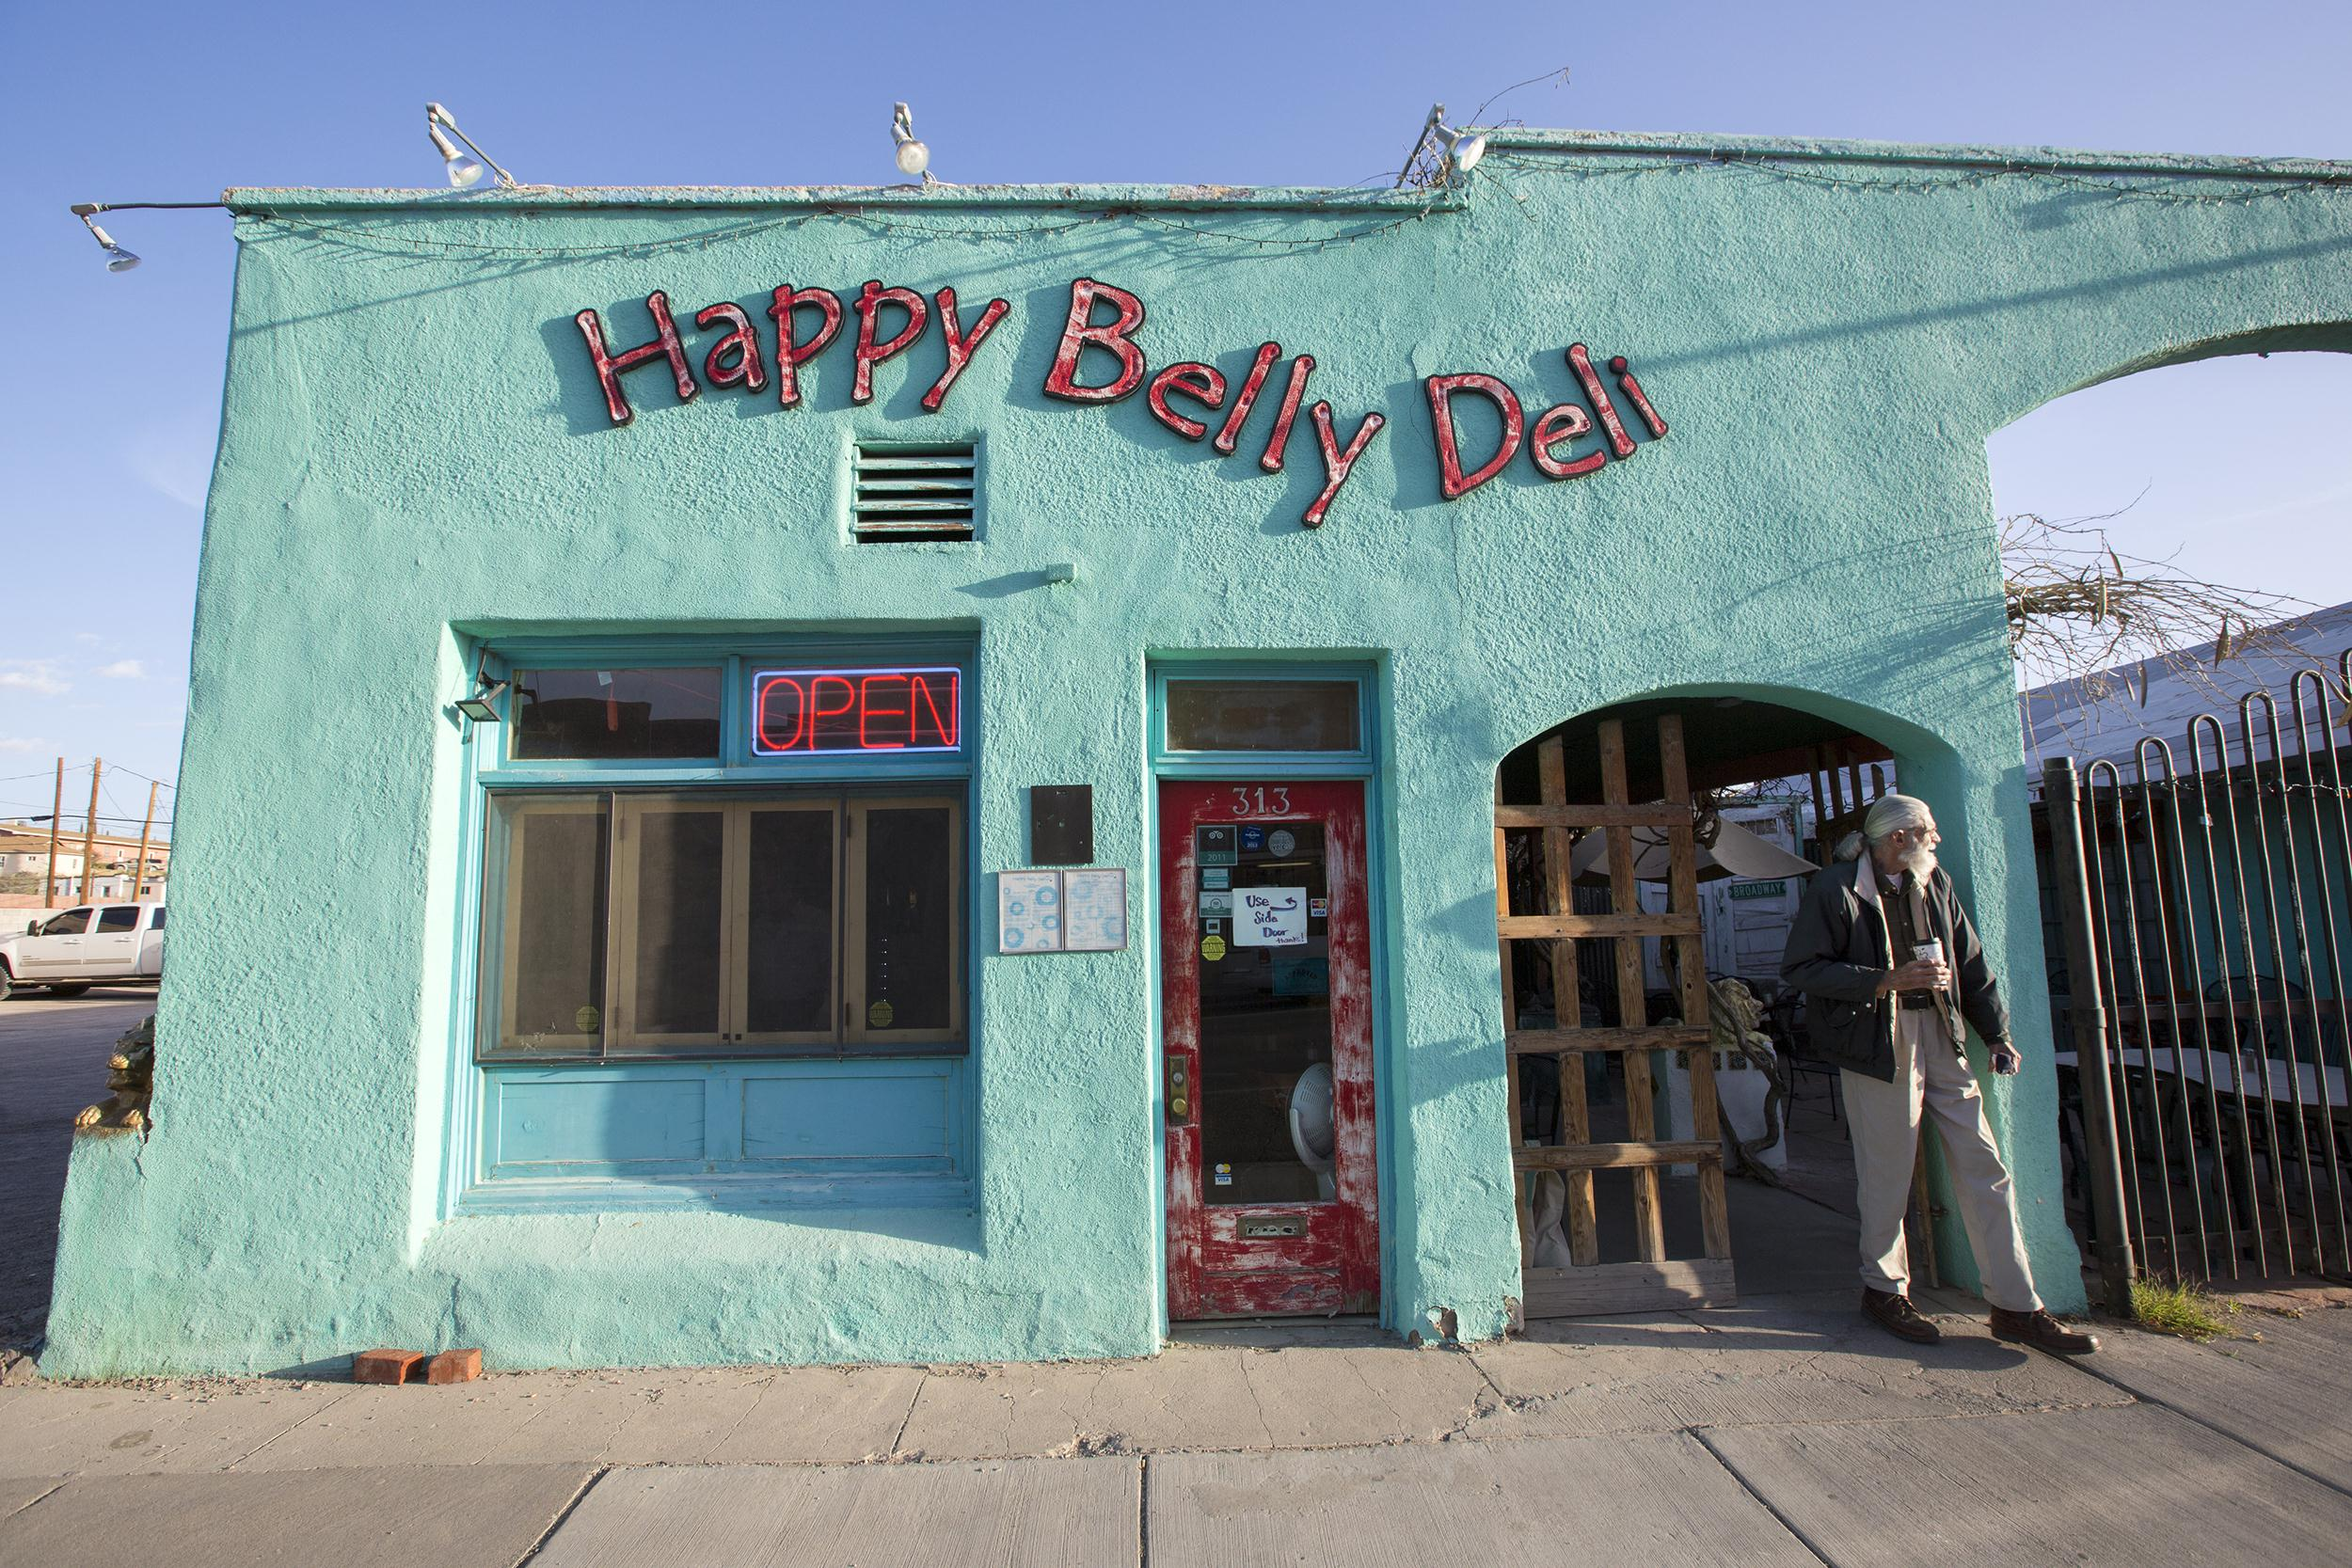 Image: Breakfast at the Happy Belly Deli